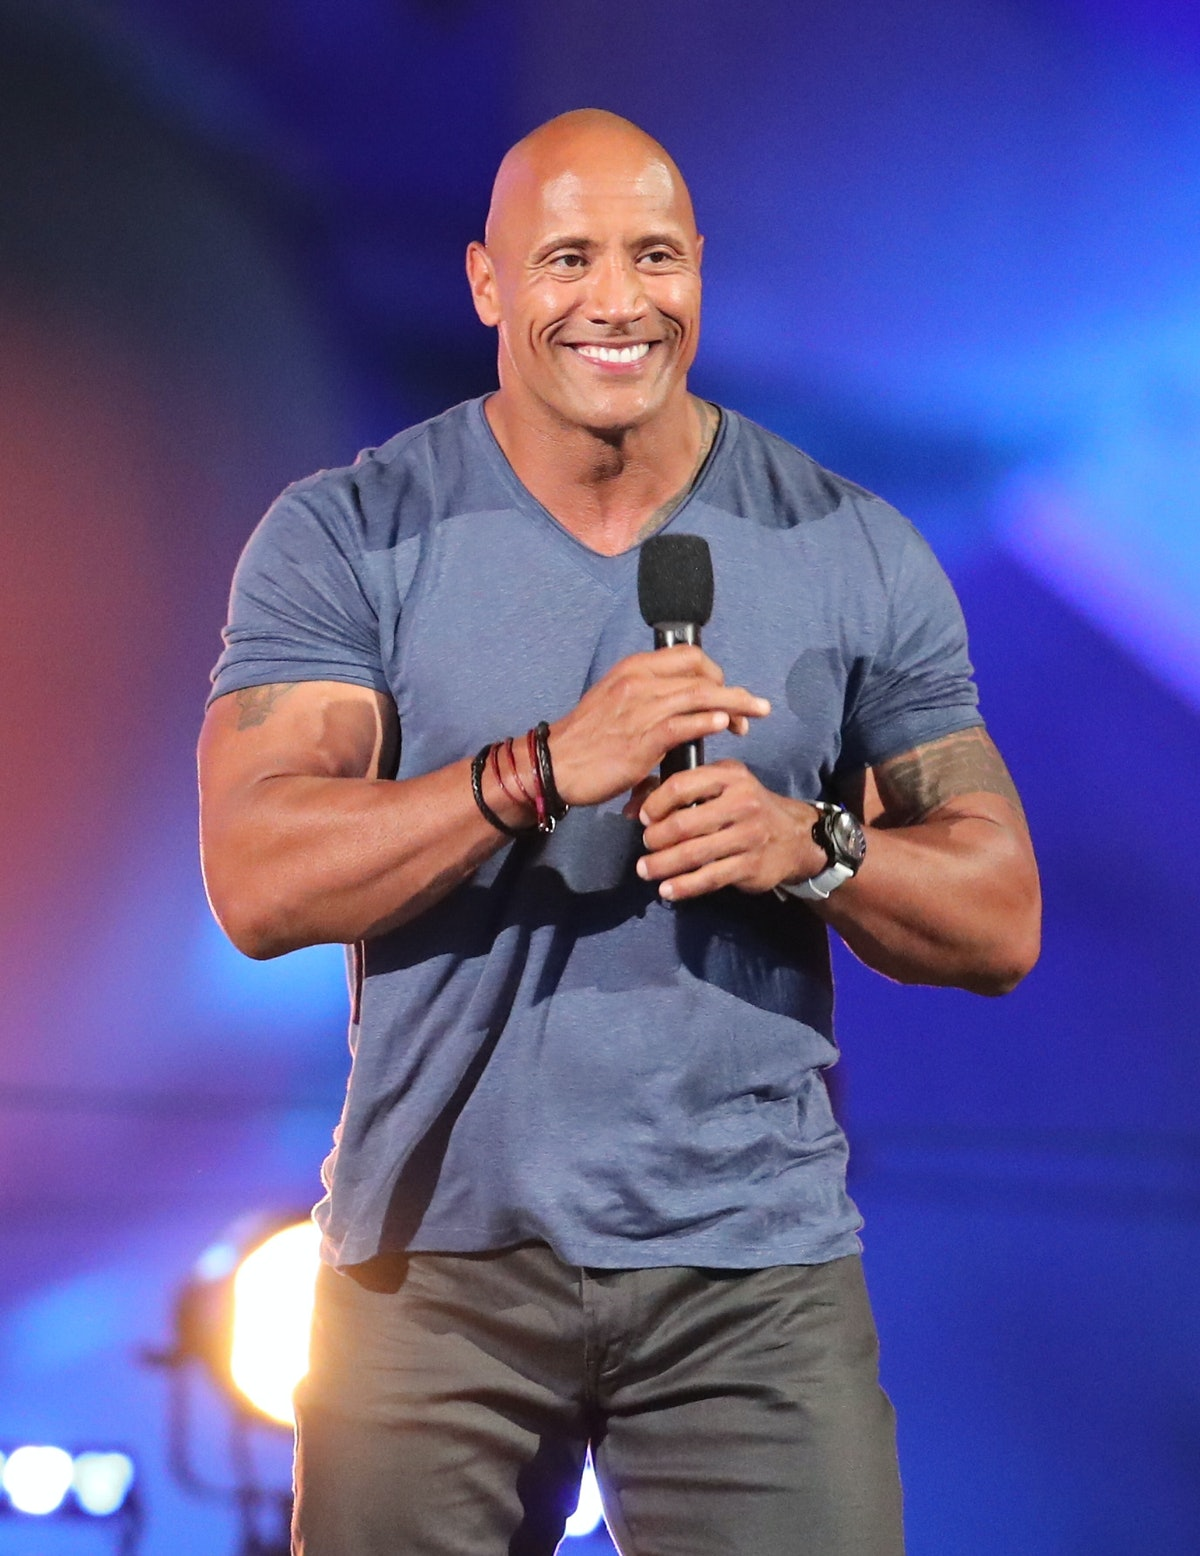 What Did Dwayne Johnson Say During His People's Choice Awards Speech? Part Of It Was Bleeped Out